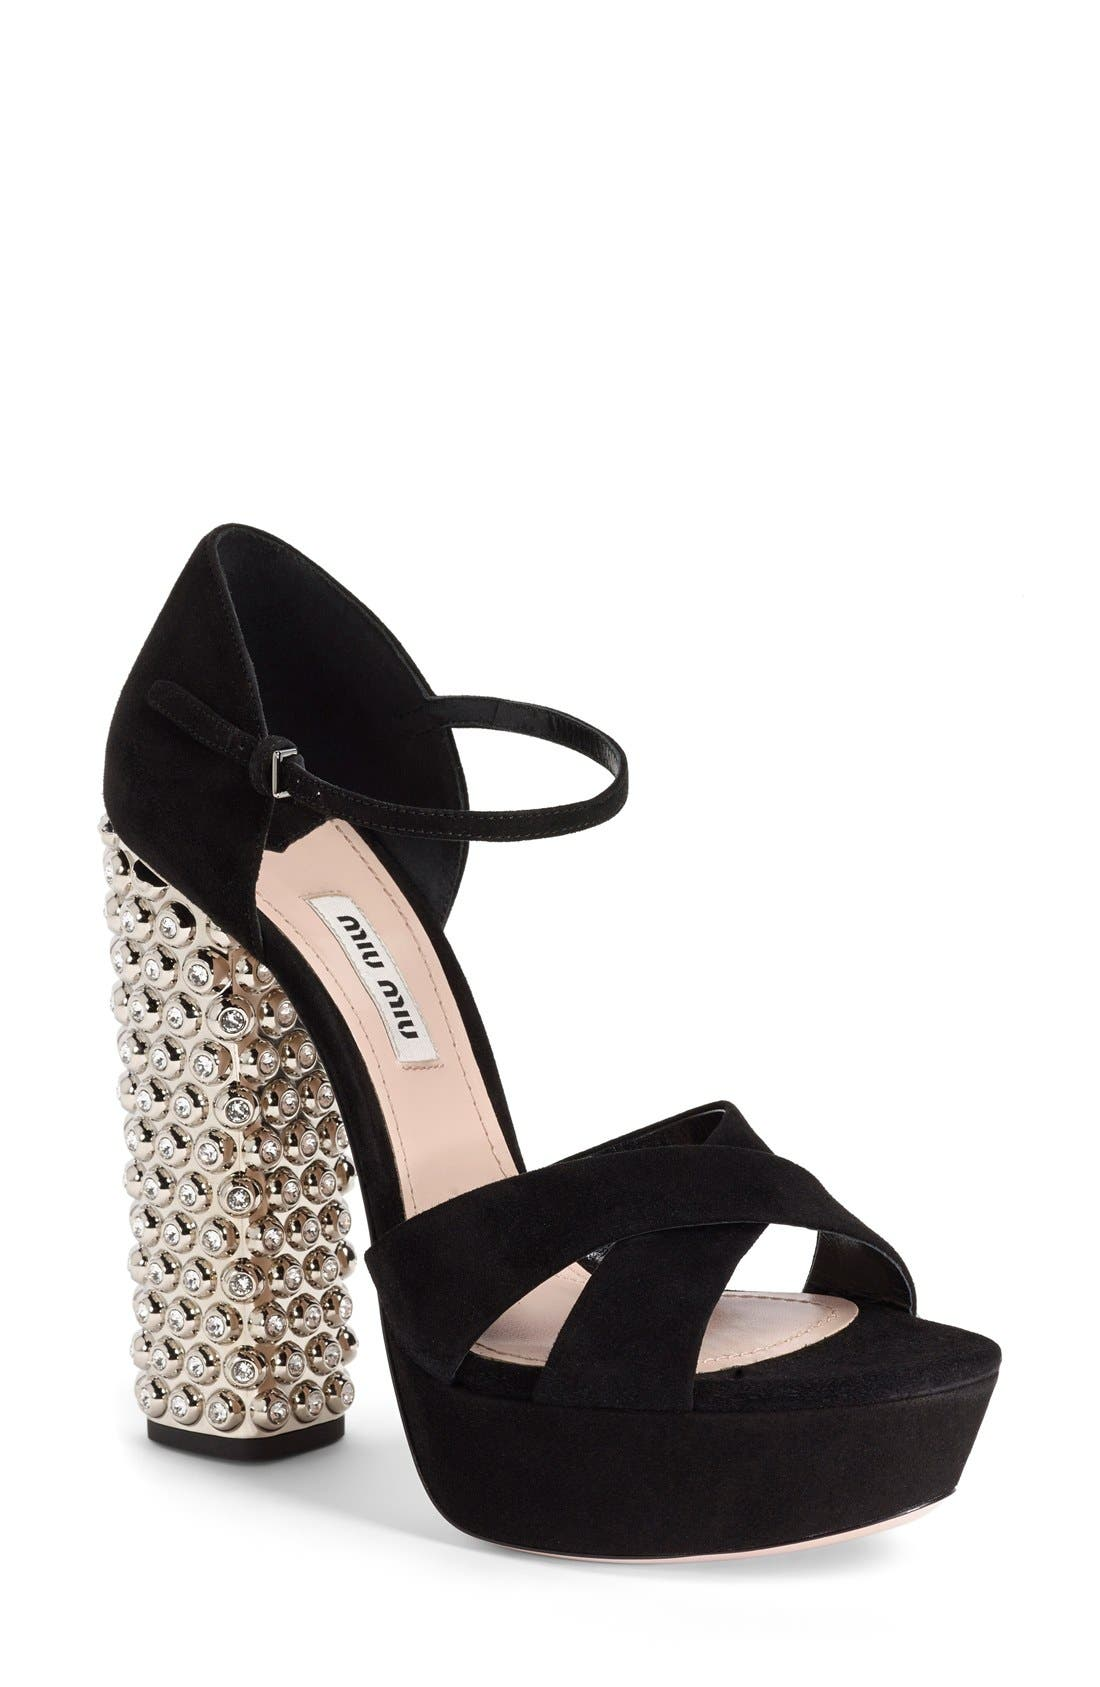 Main Image - Miu Miu Jeweled Platform Sandal (Women)